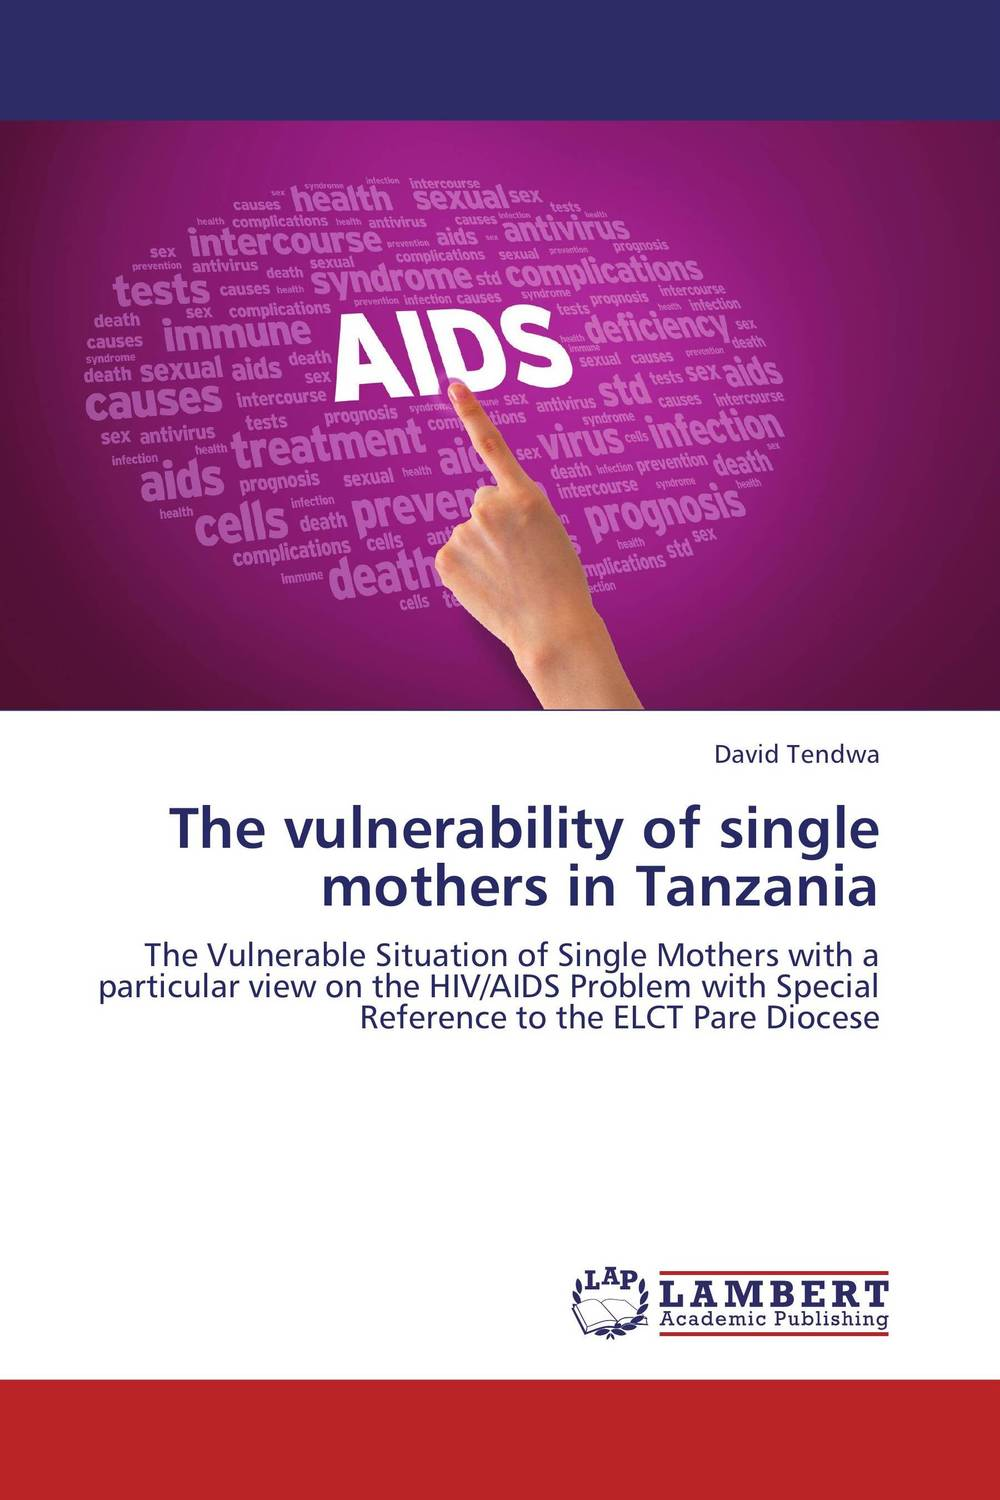 The vulnerability of single mothers in Tanzania купить